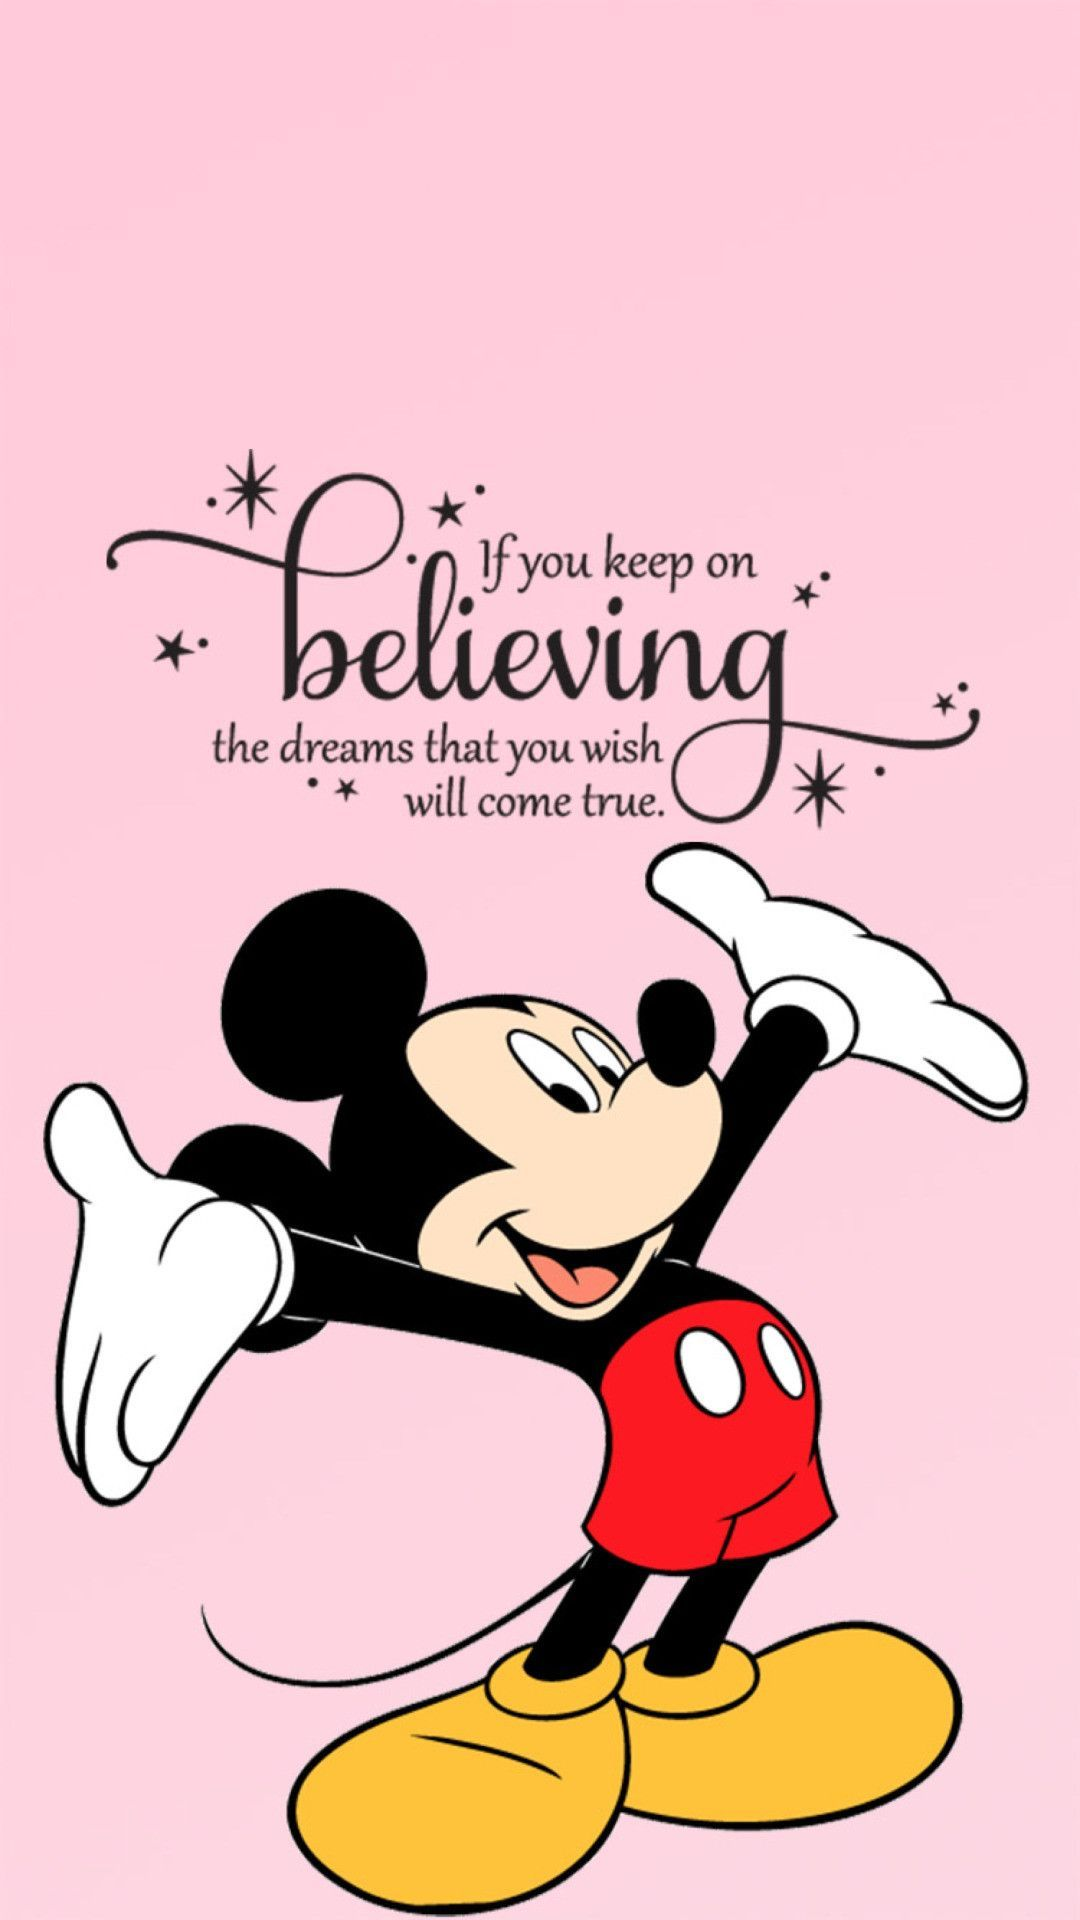 Black Minnie Mouse Wallpaper Home Screen In 2020 Mickey Mouse Quotes Walt Disney Quotes Disney Quotes